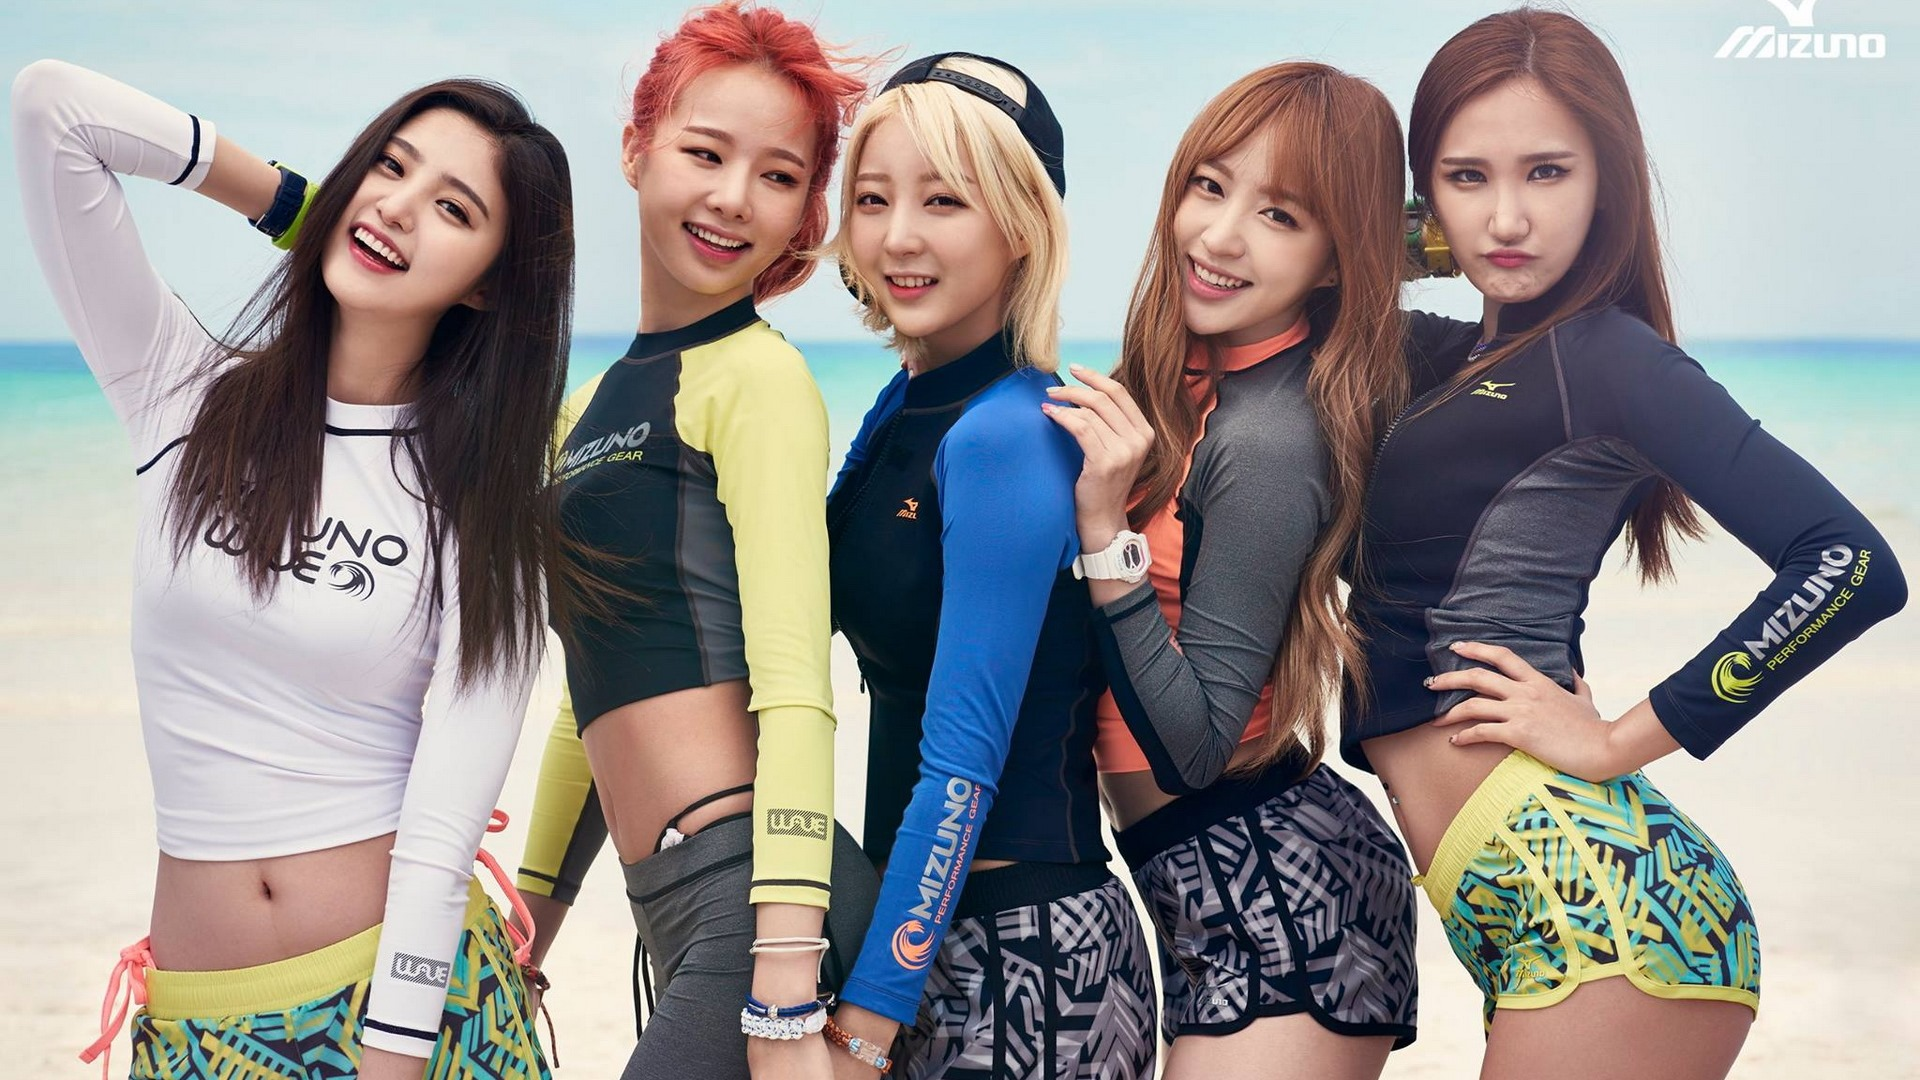 Exid Korean Music Girls Group Hd Wallpapers 15 1920x1080